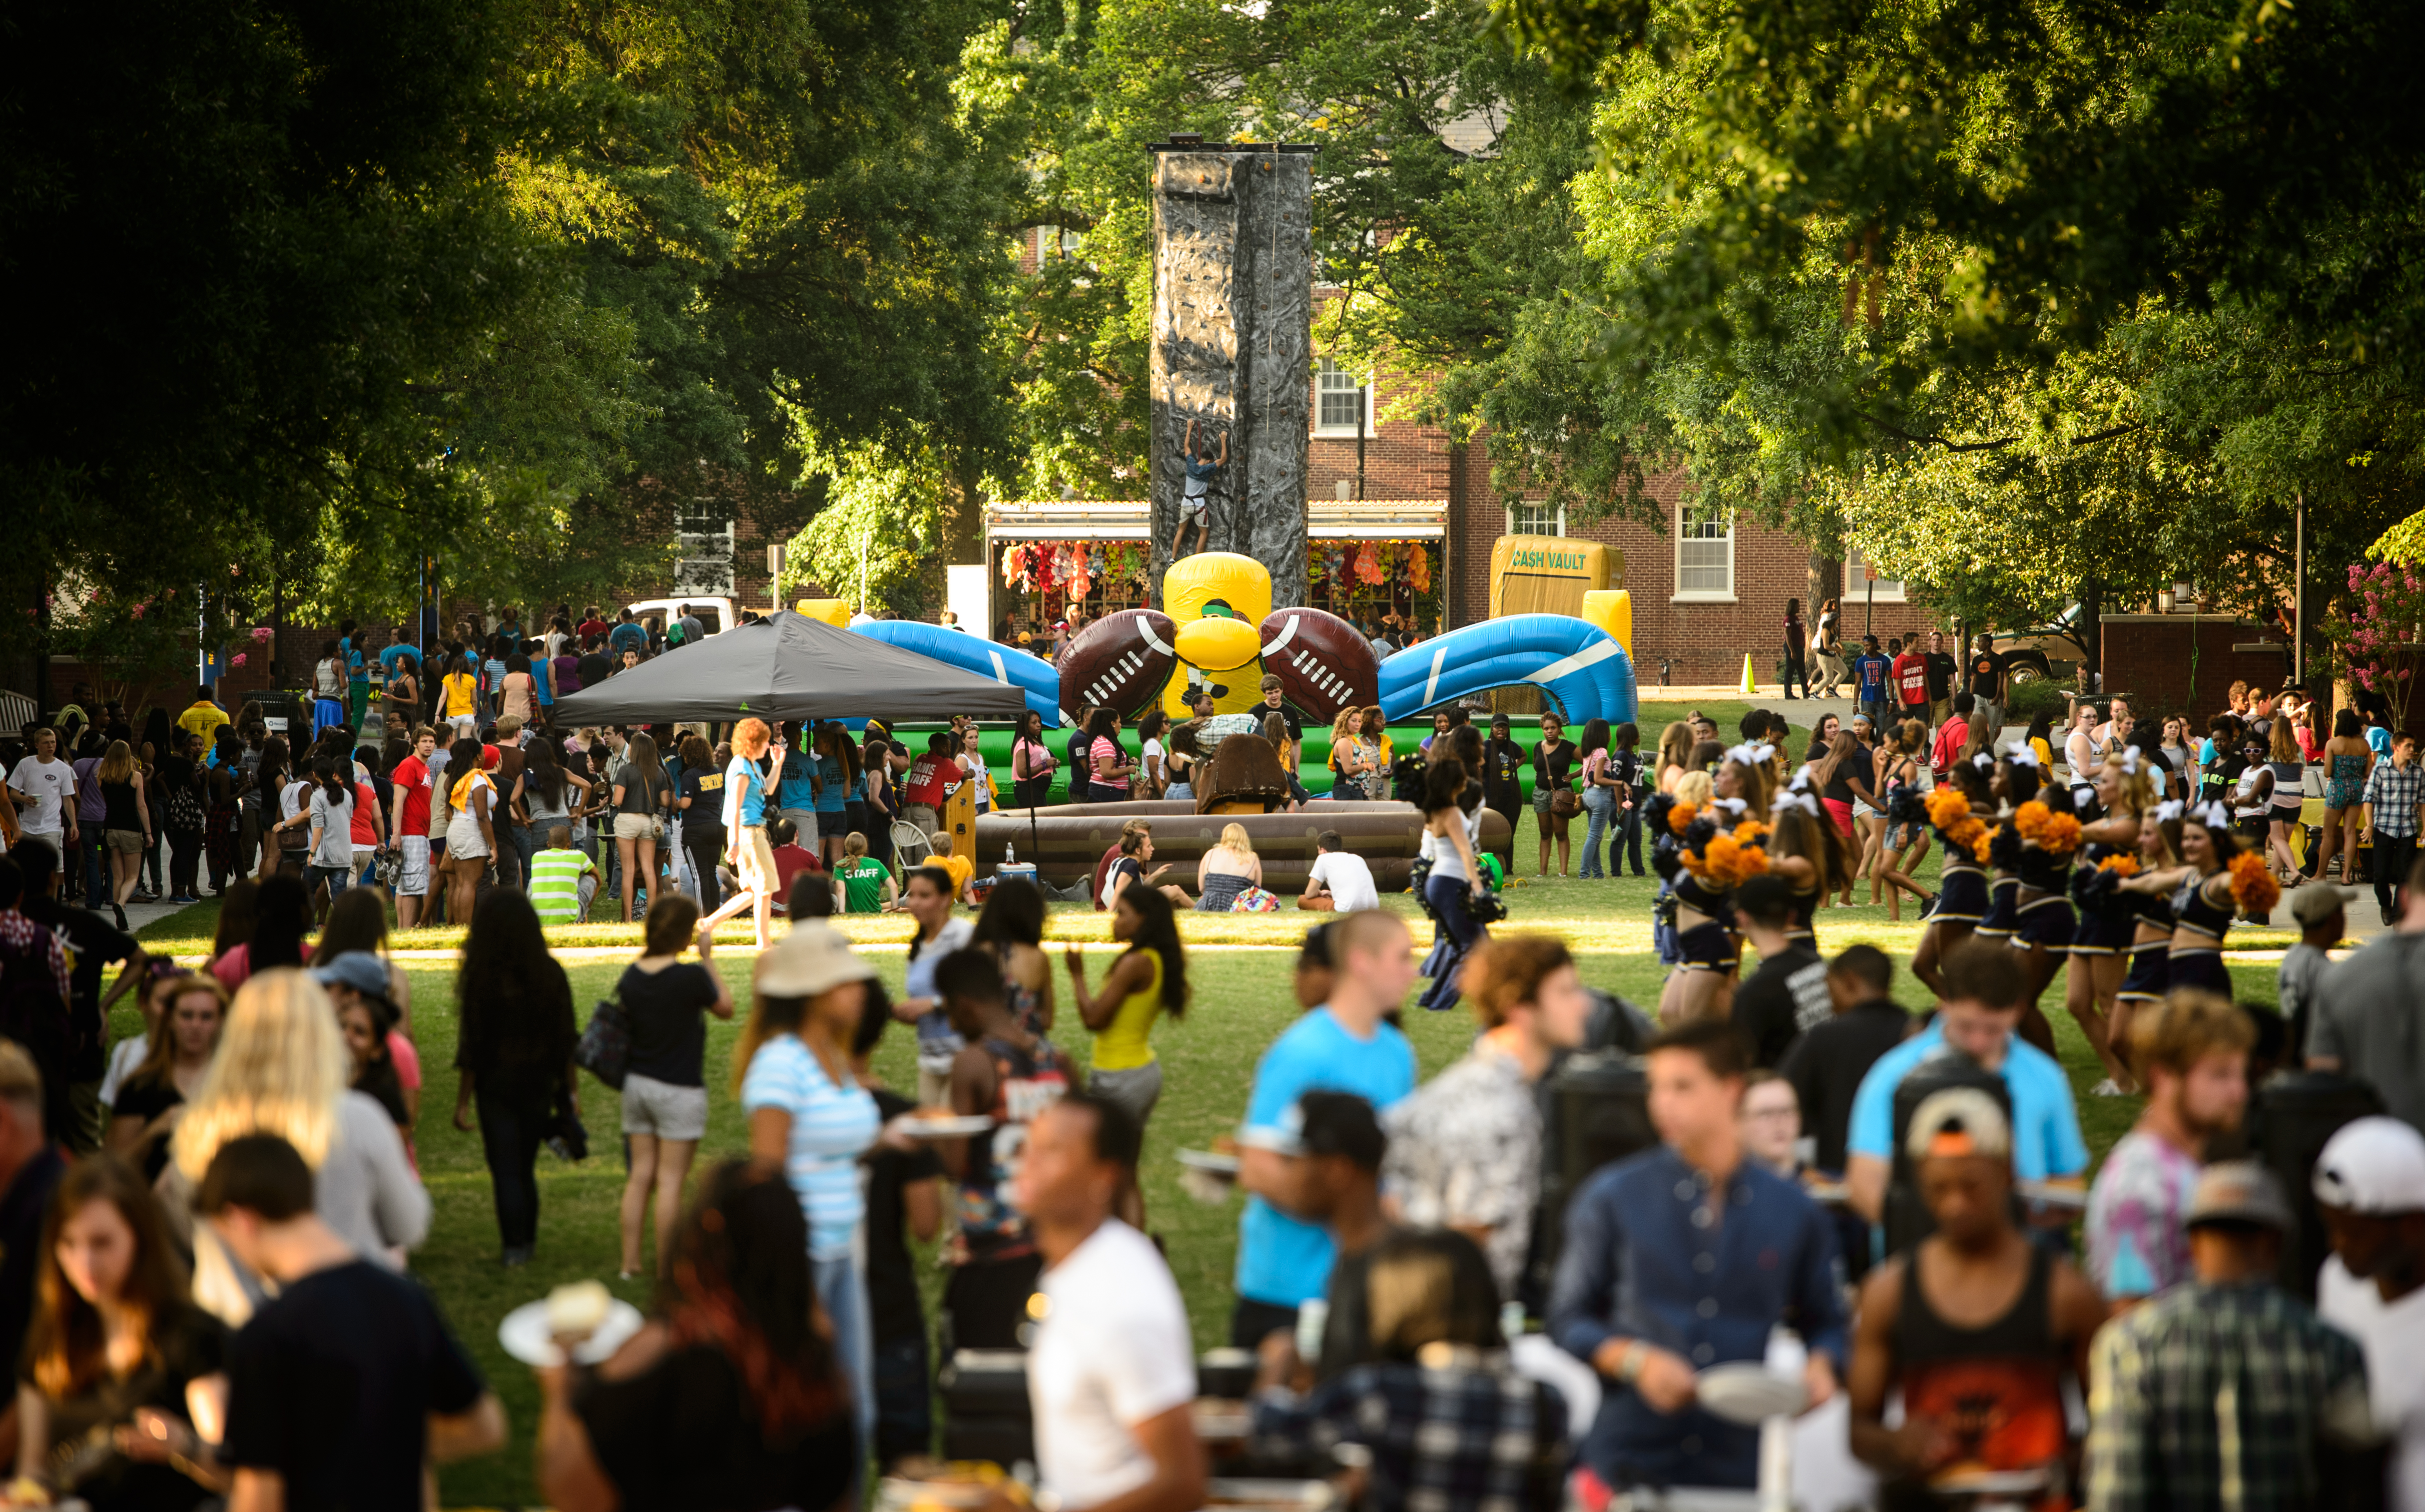 UNCG students enjoy the Housing and Residence Life Carnival